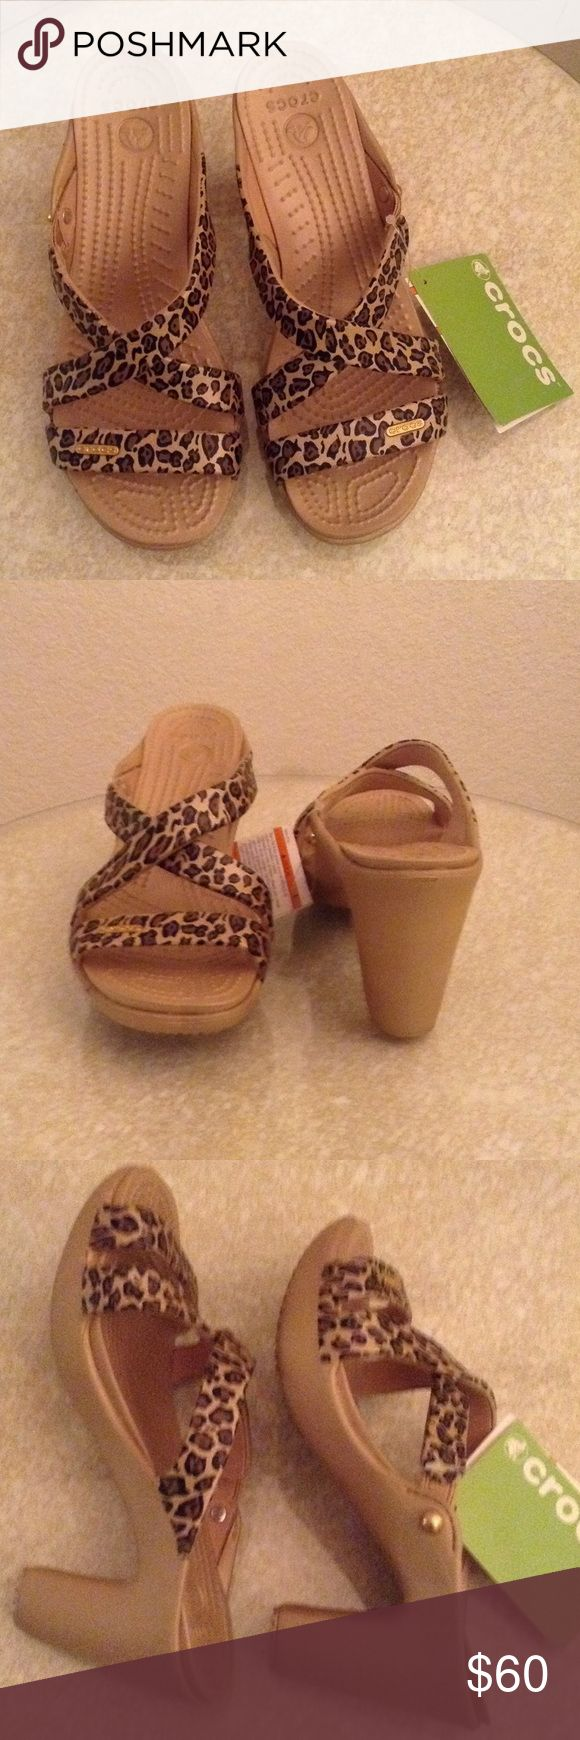 Crocs Animal print high heel Sandals Sz 7 New!!! Crocs animal print sandals, new with tags. Gorgeous sandals that can be worn out, not just in the yard. Size 7 CROCS Shoes Sandals